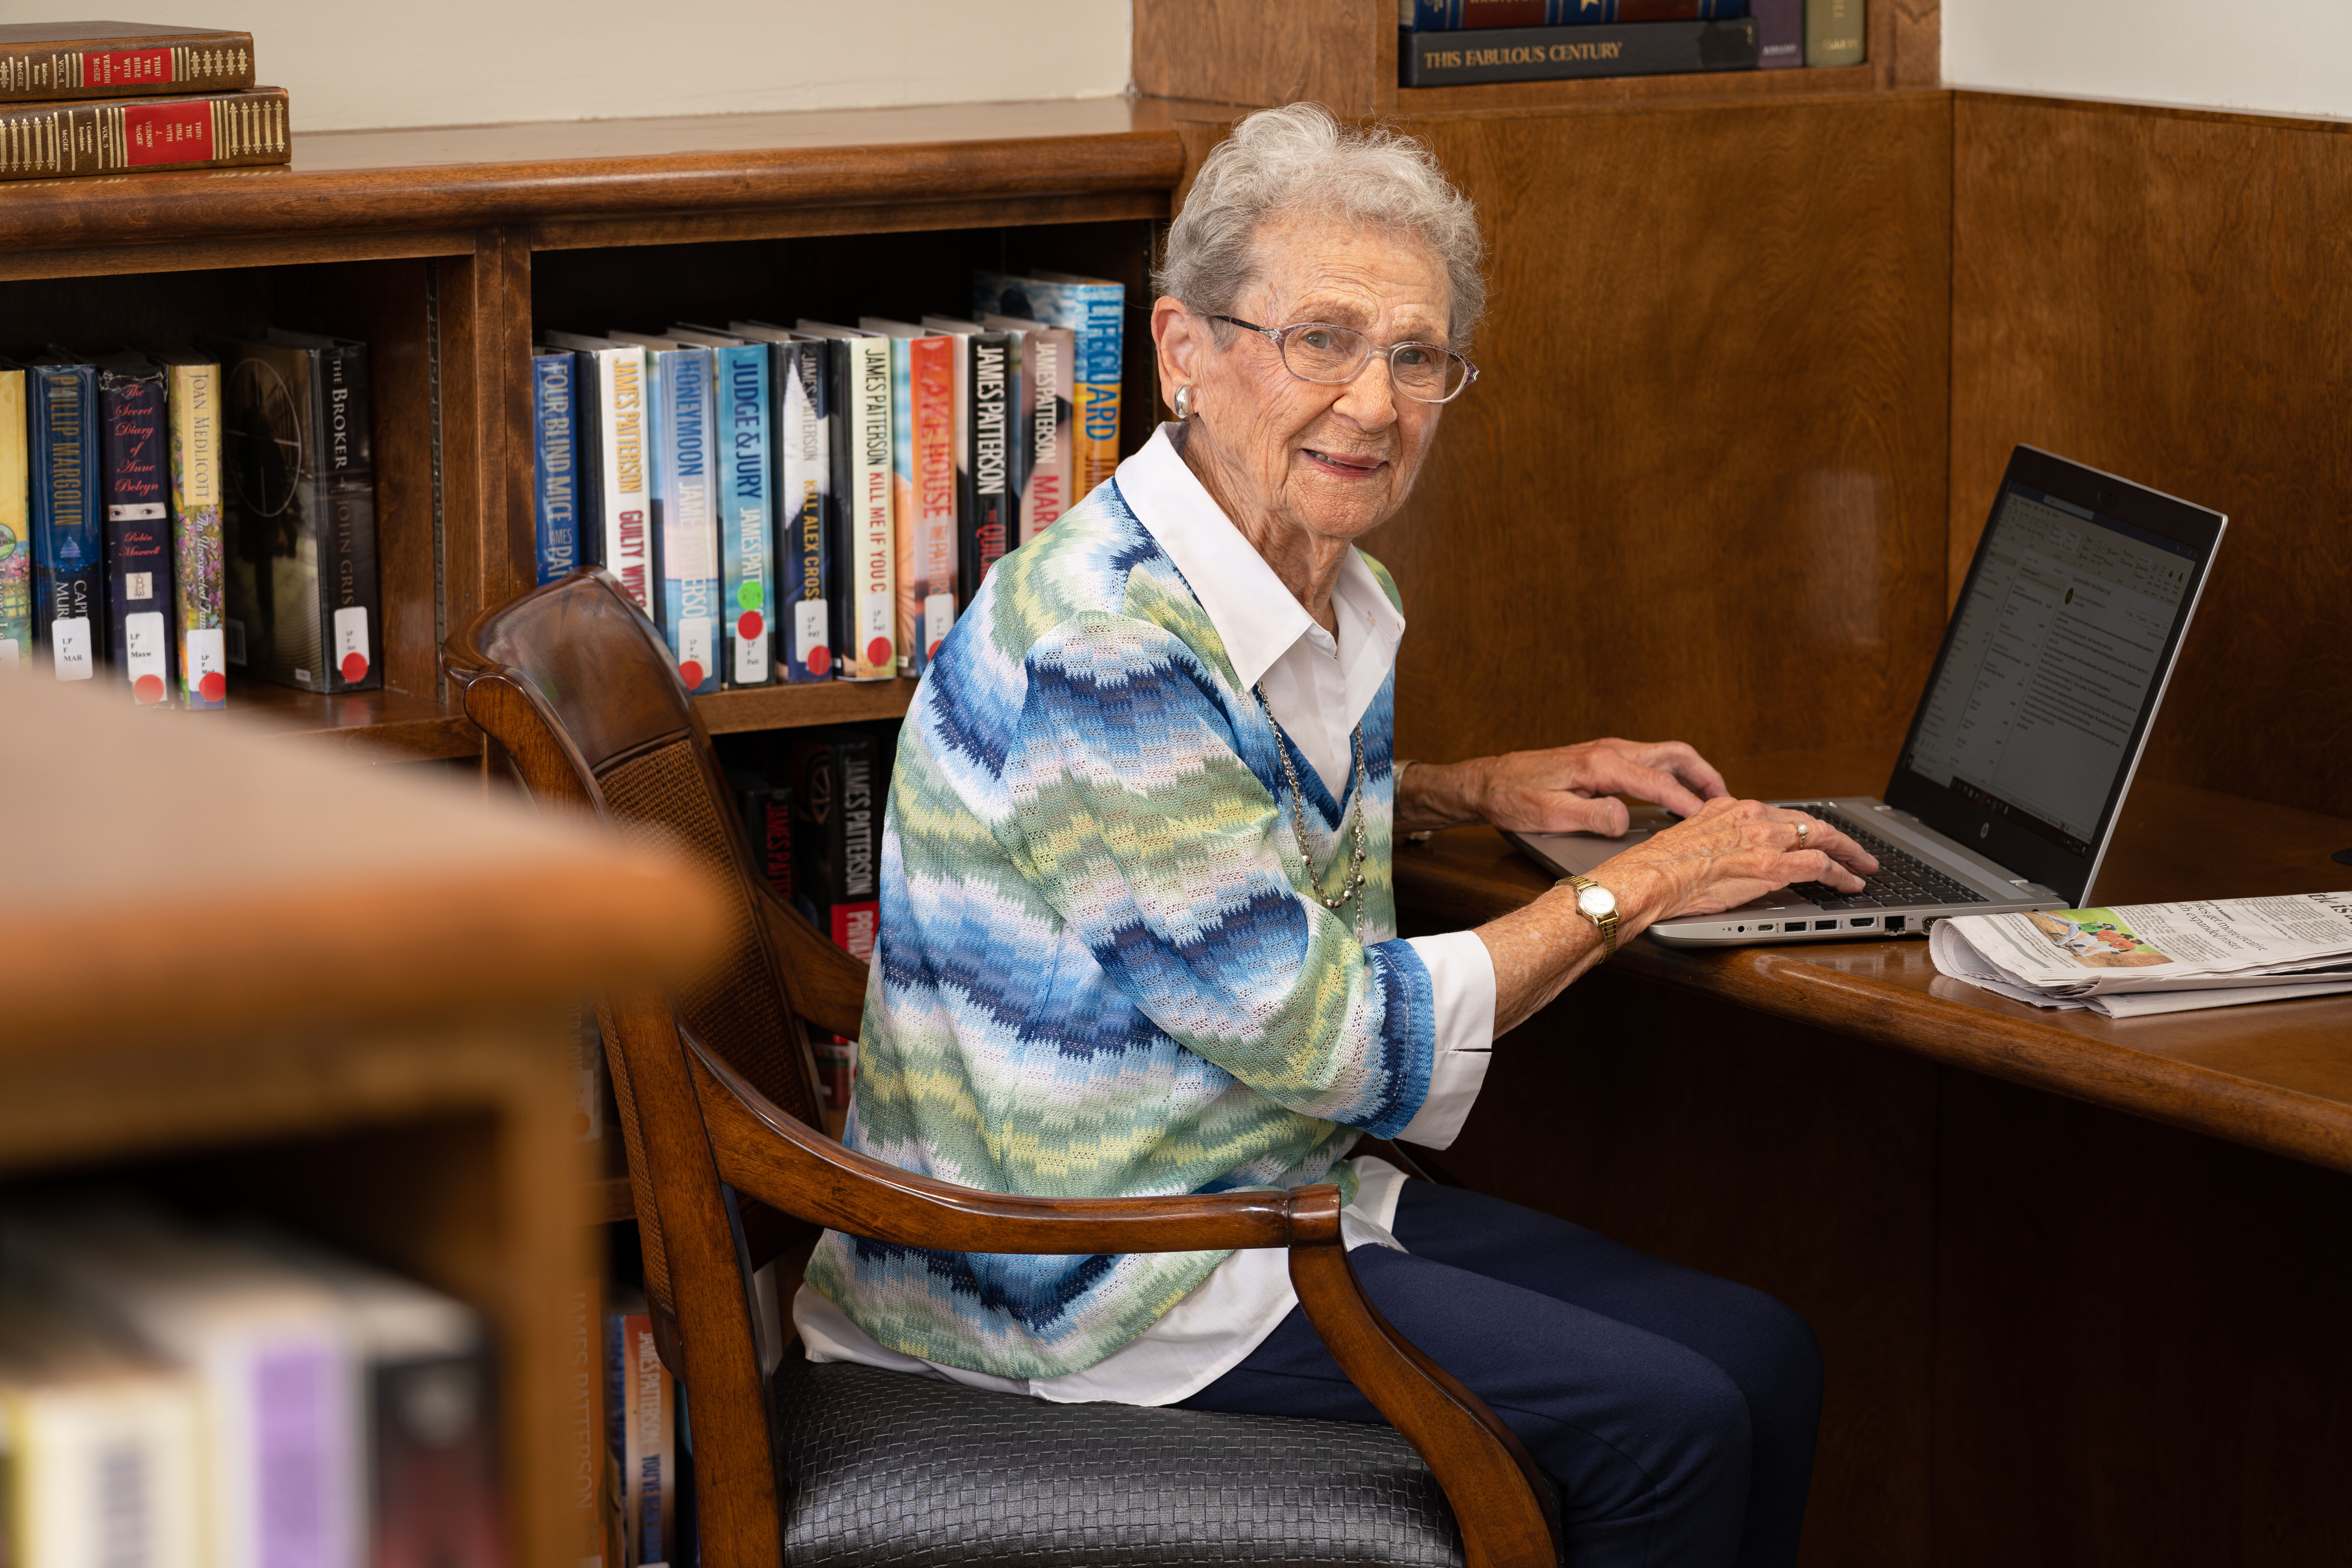 senior resident at The Chespeake on laptop in the library area